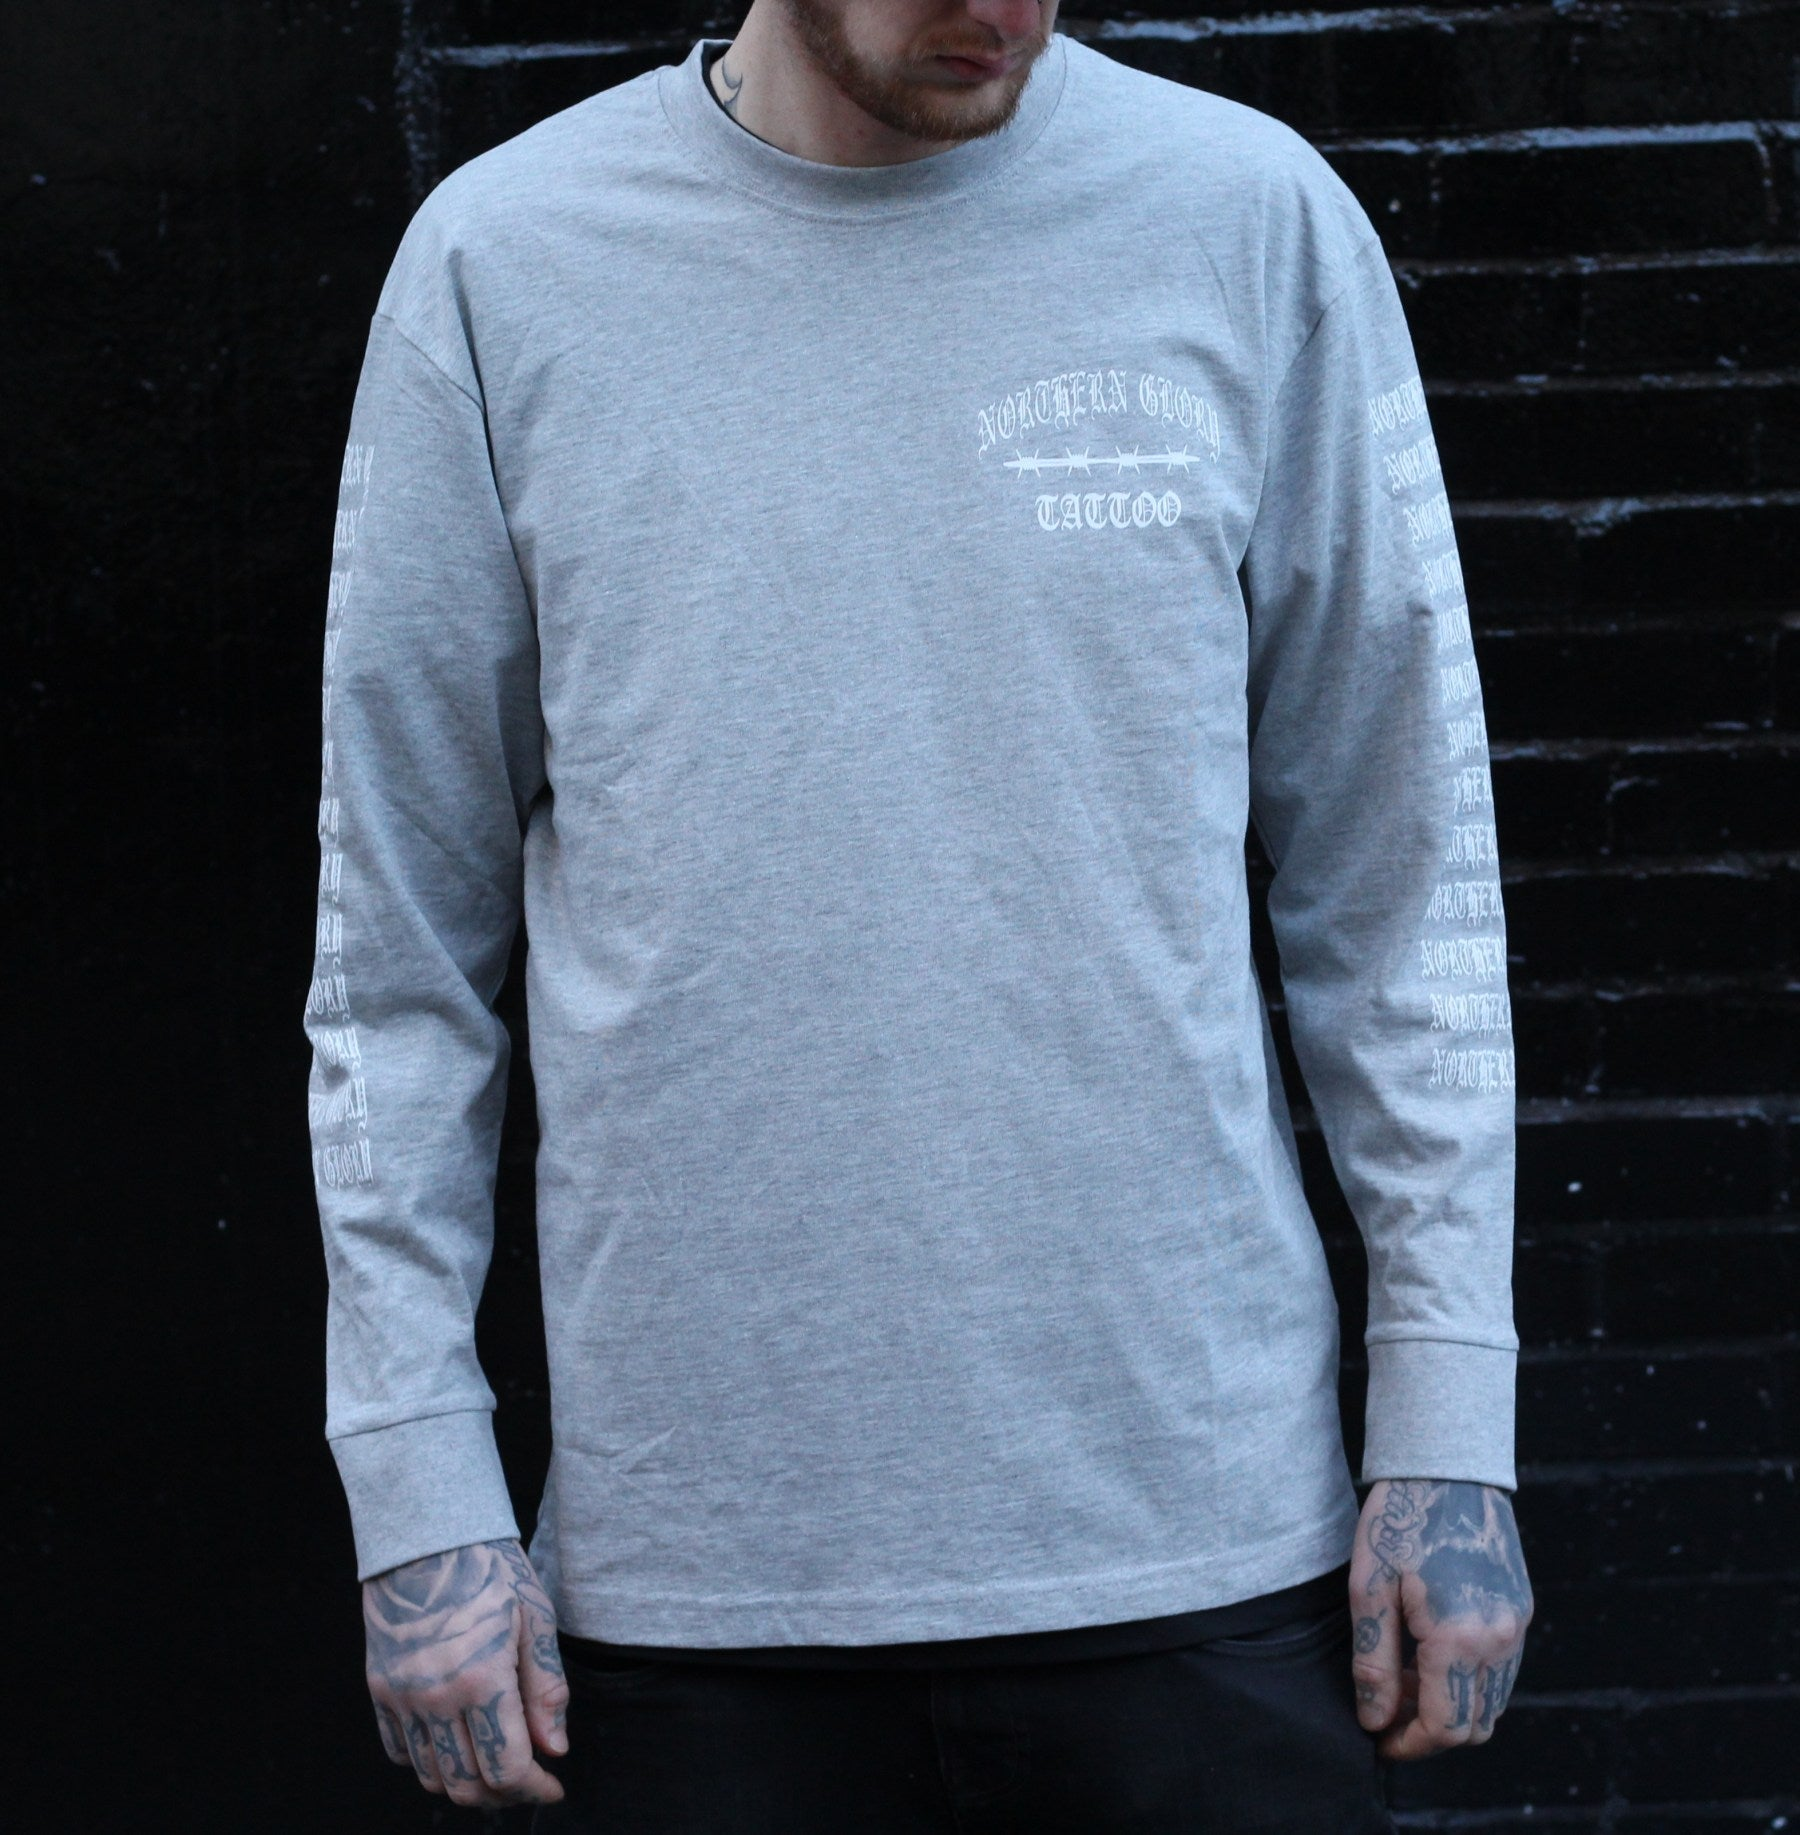 Northern Glory Longsleeve Tee - Grey